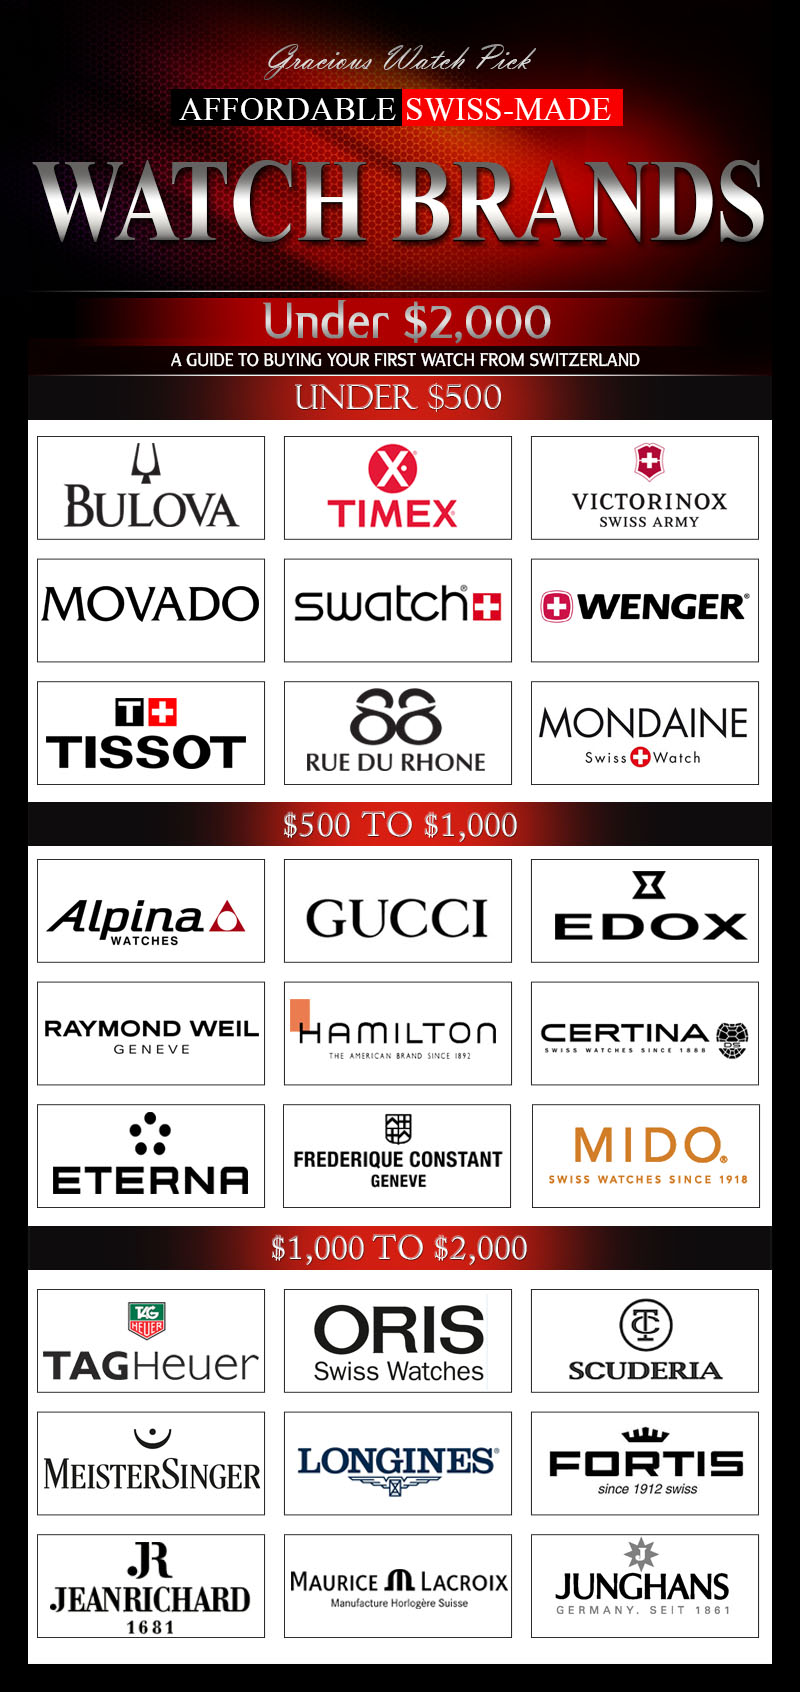 Affordable-Swiss-Watch-Brands-Gracious-Watch-Picks-Infographic